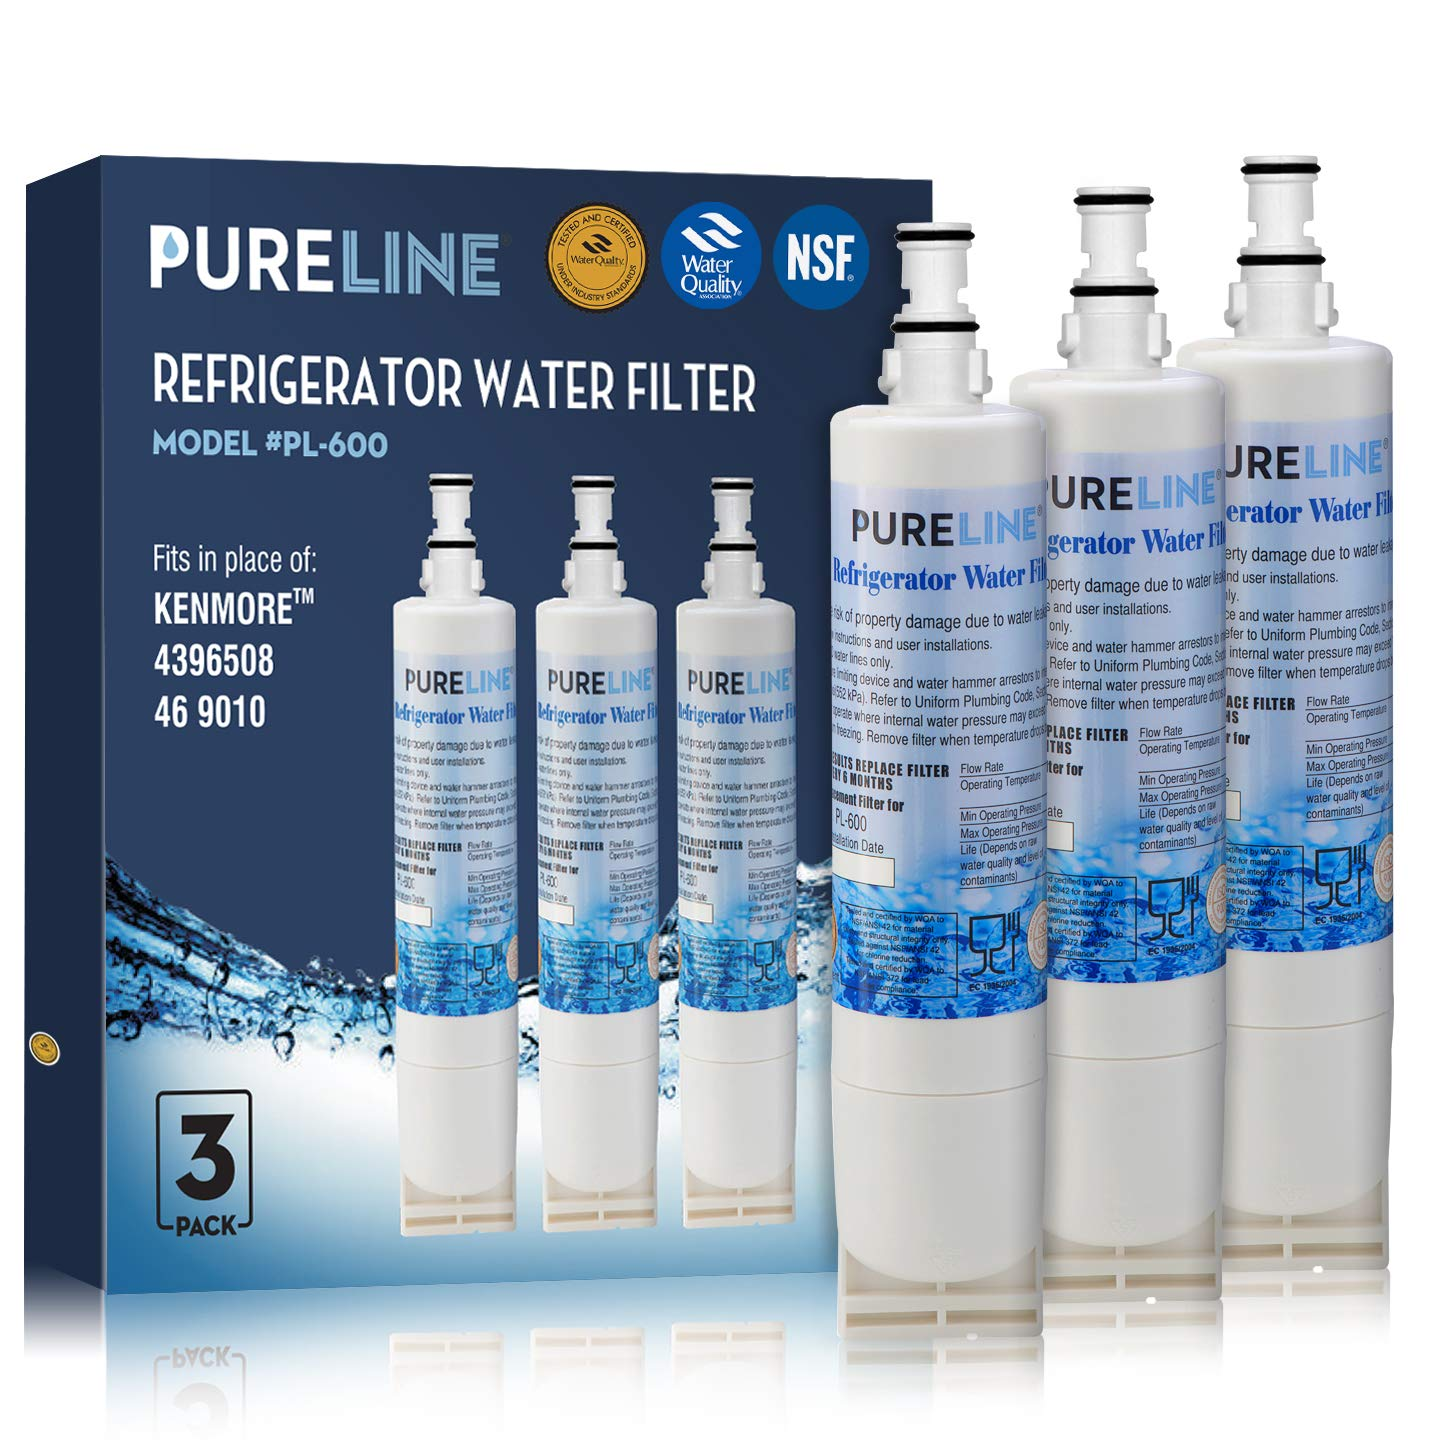 Pure Line Water Filter, Compatible with 4396510 W10186668 NLC240V, 4396510, WF285, 4392857 4396163 4396547 8212491 46-9010 46-9902 46-9908 models (3 Pack)